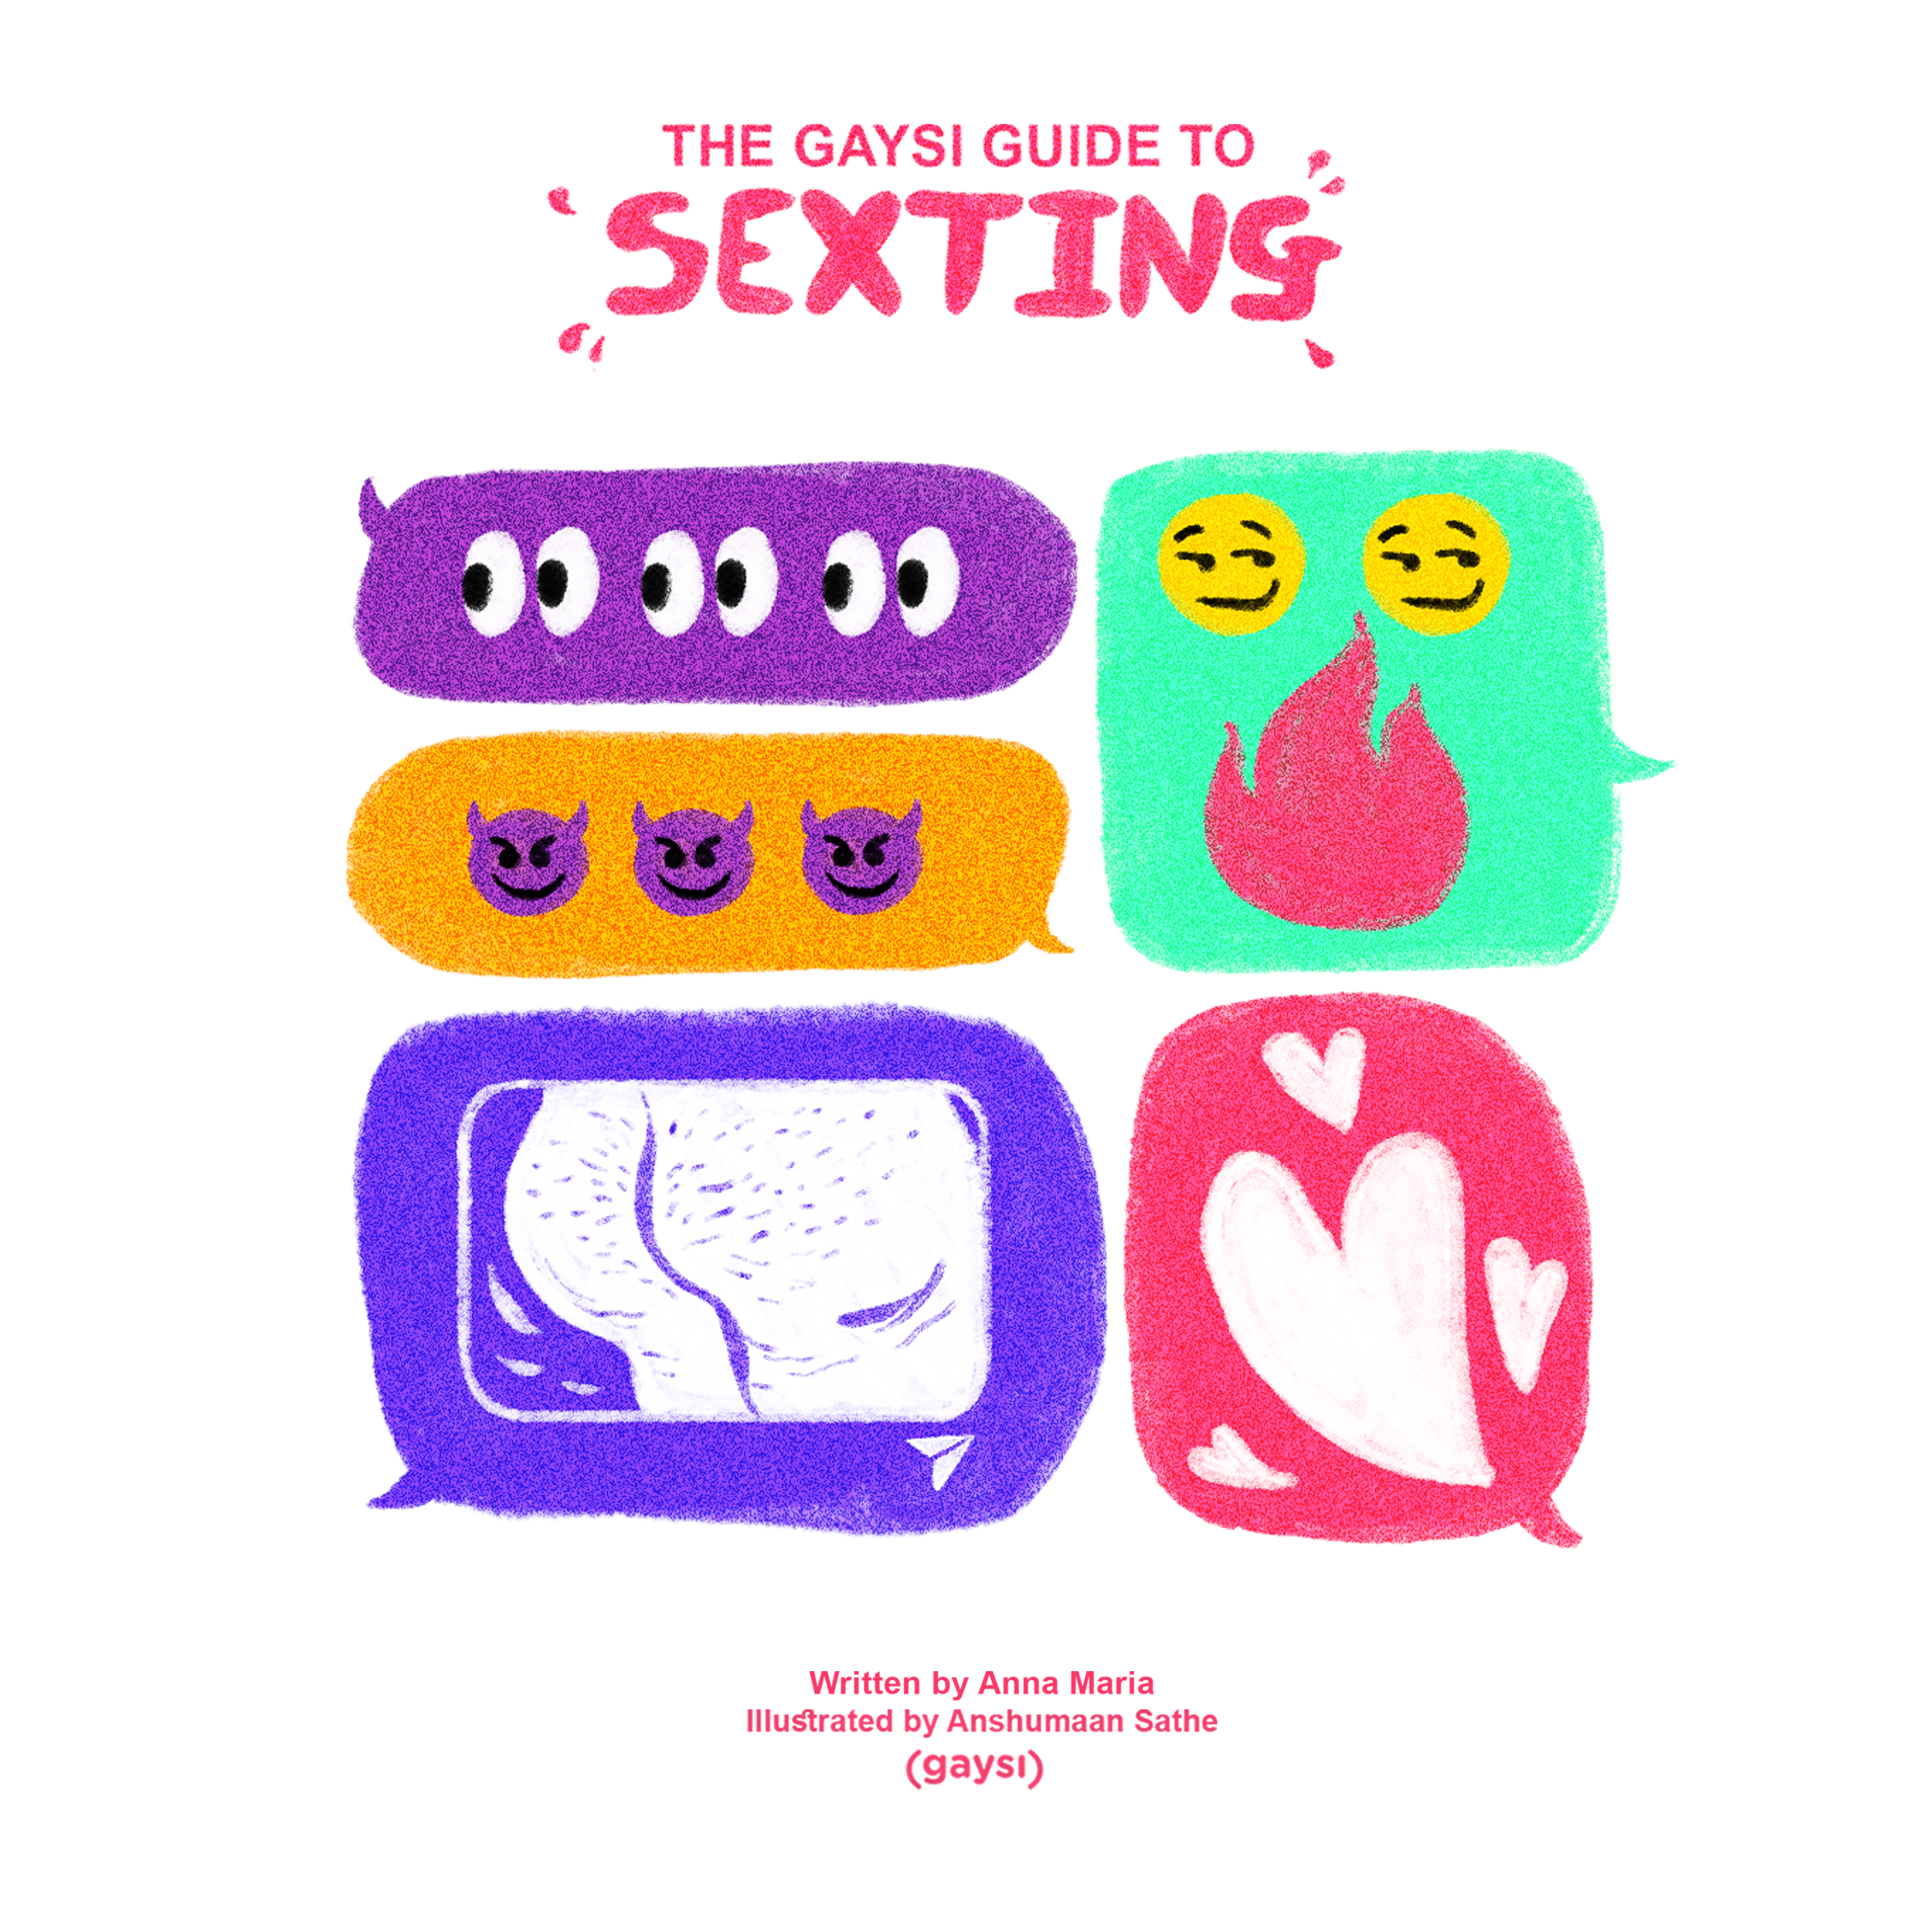 The Gaysi Guide To Sexting